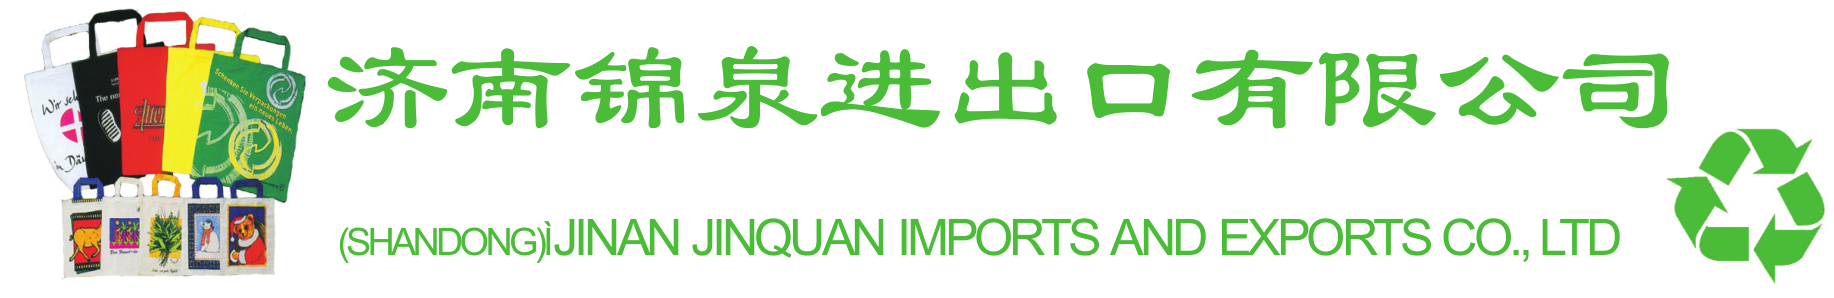 JINAN JINQUAN IMPORTS AND EXPORTS CO.,LTD